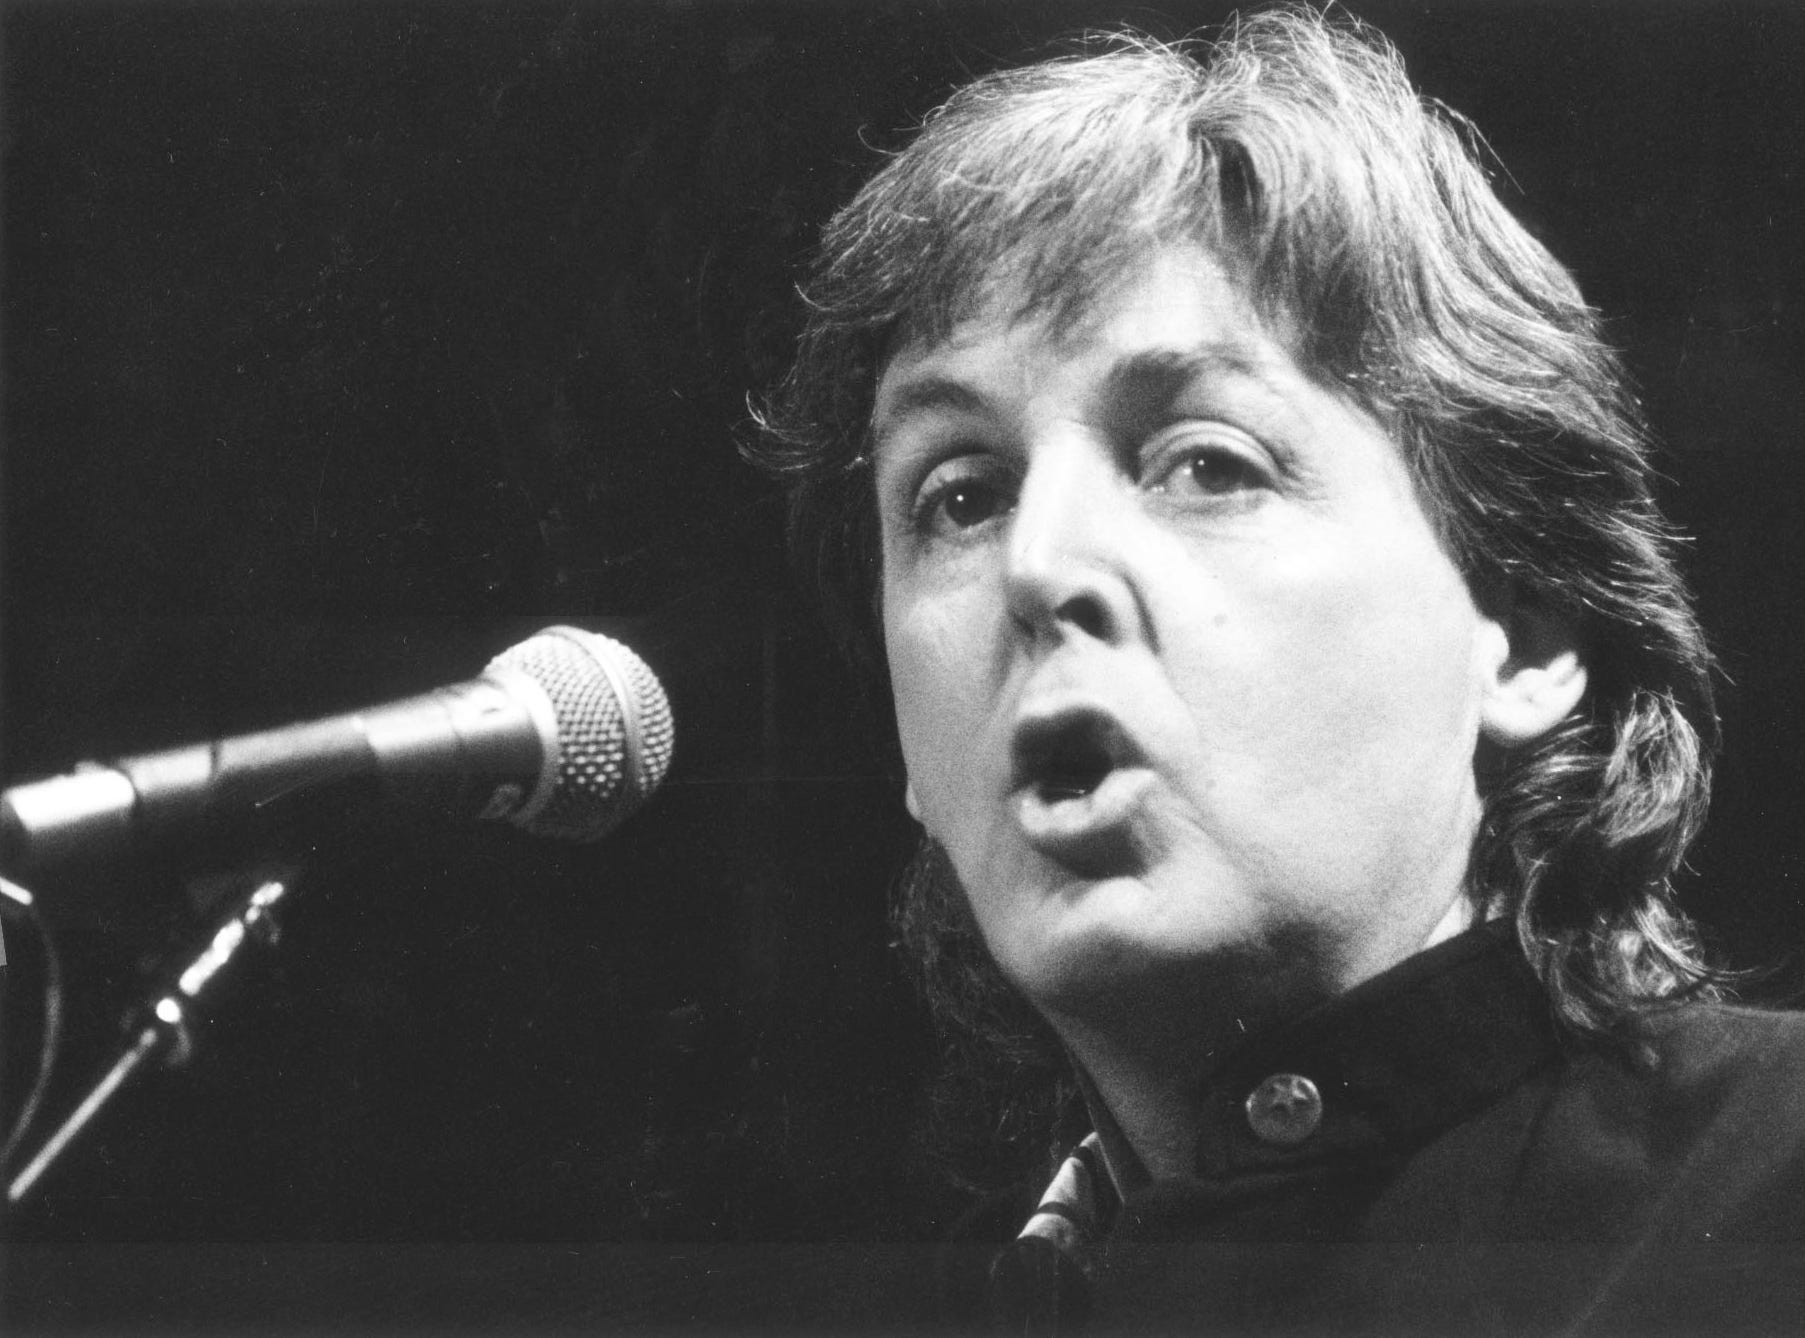 Paul McCartney in concert at Market Square Are on Feb. 14, 1990.